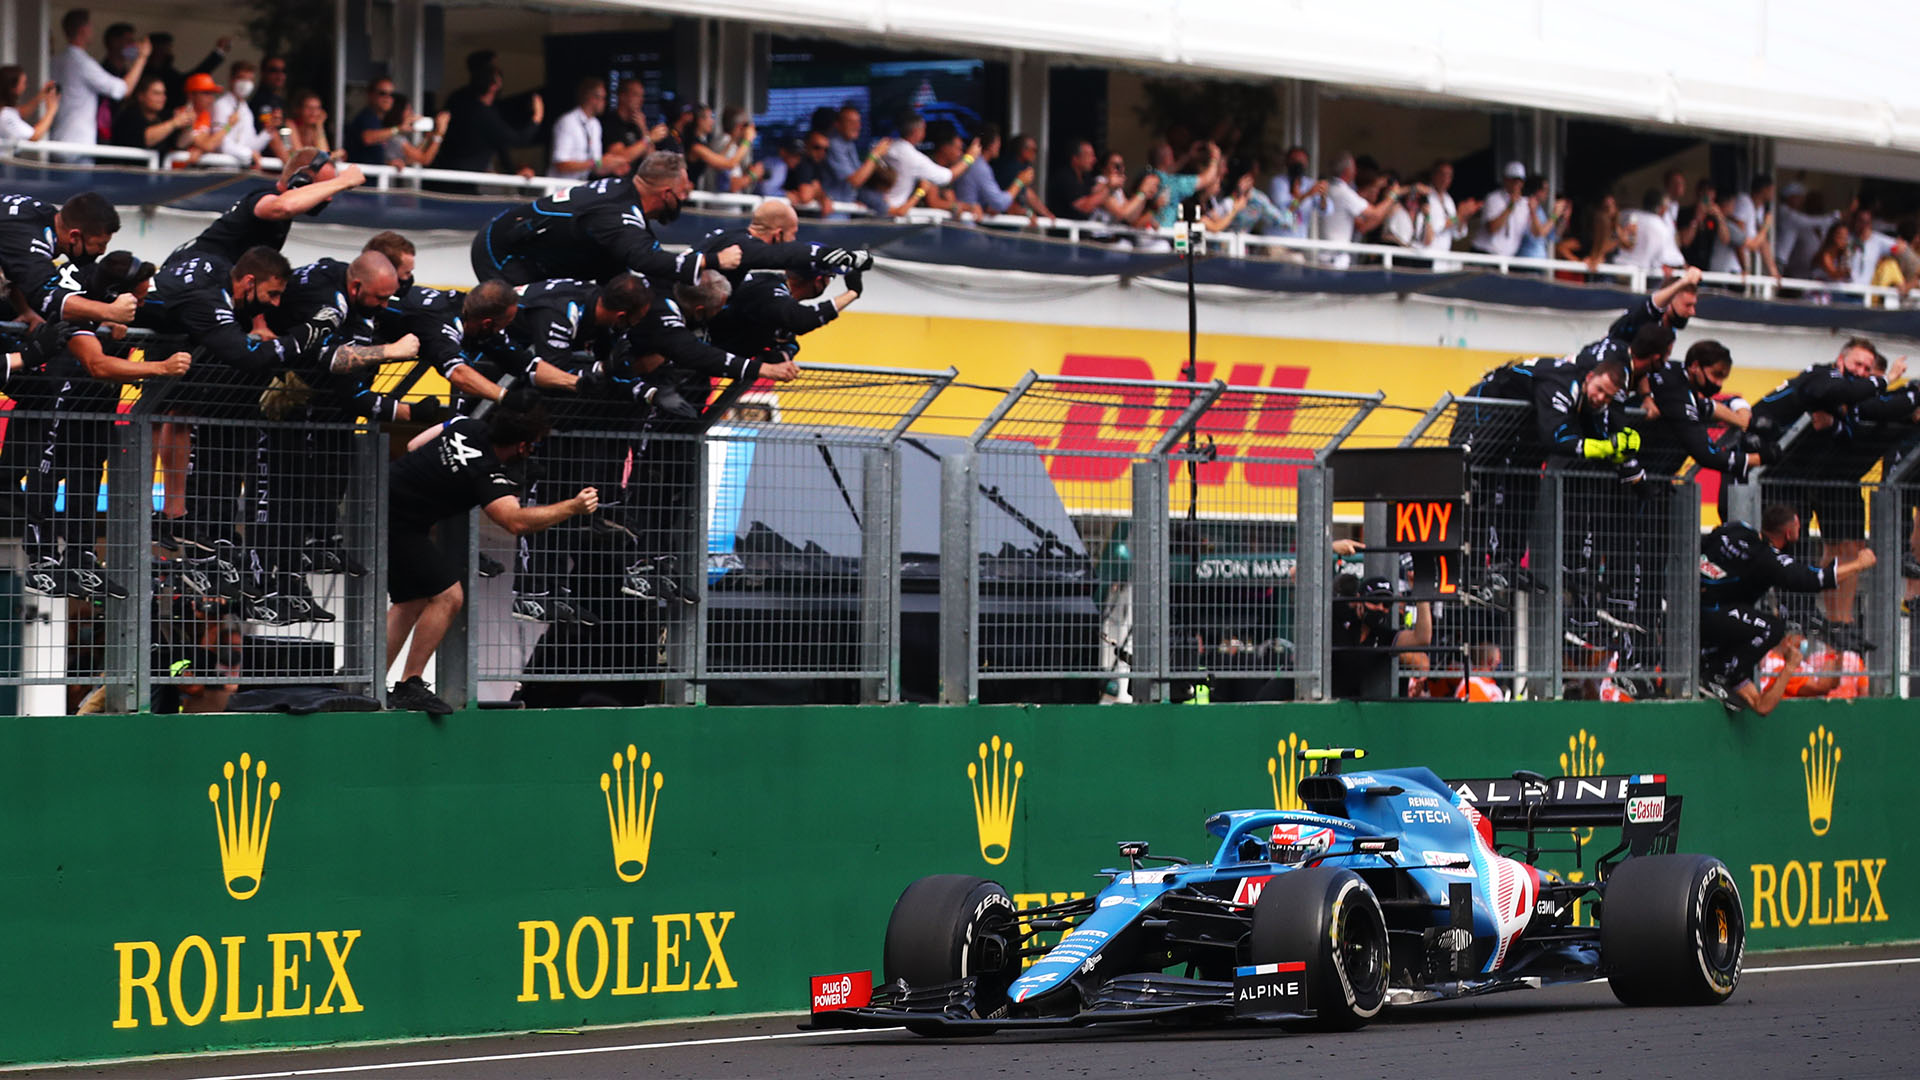 Ocon beats Vettel to claim shock maiden victory in action-packed Hungarian Grand Prix